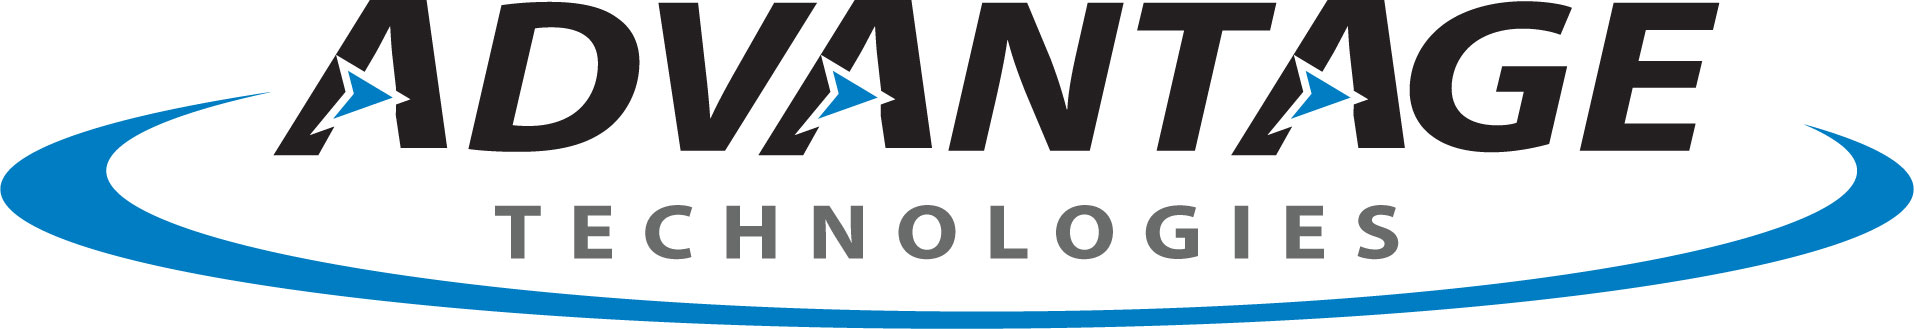 Image of Blue and Black Advantage Technologies Logo